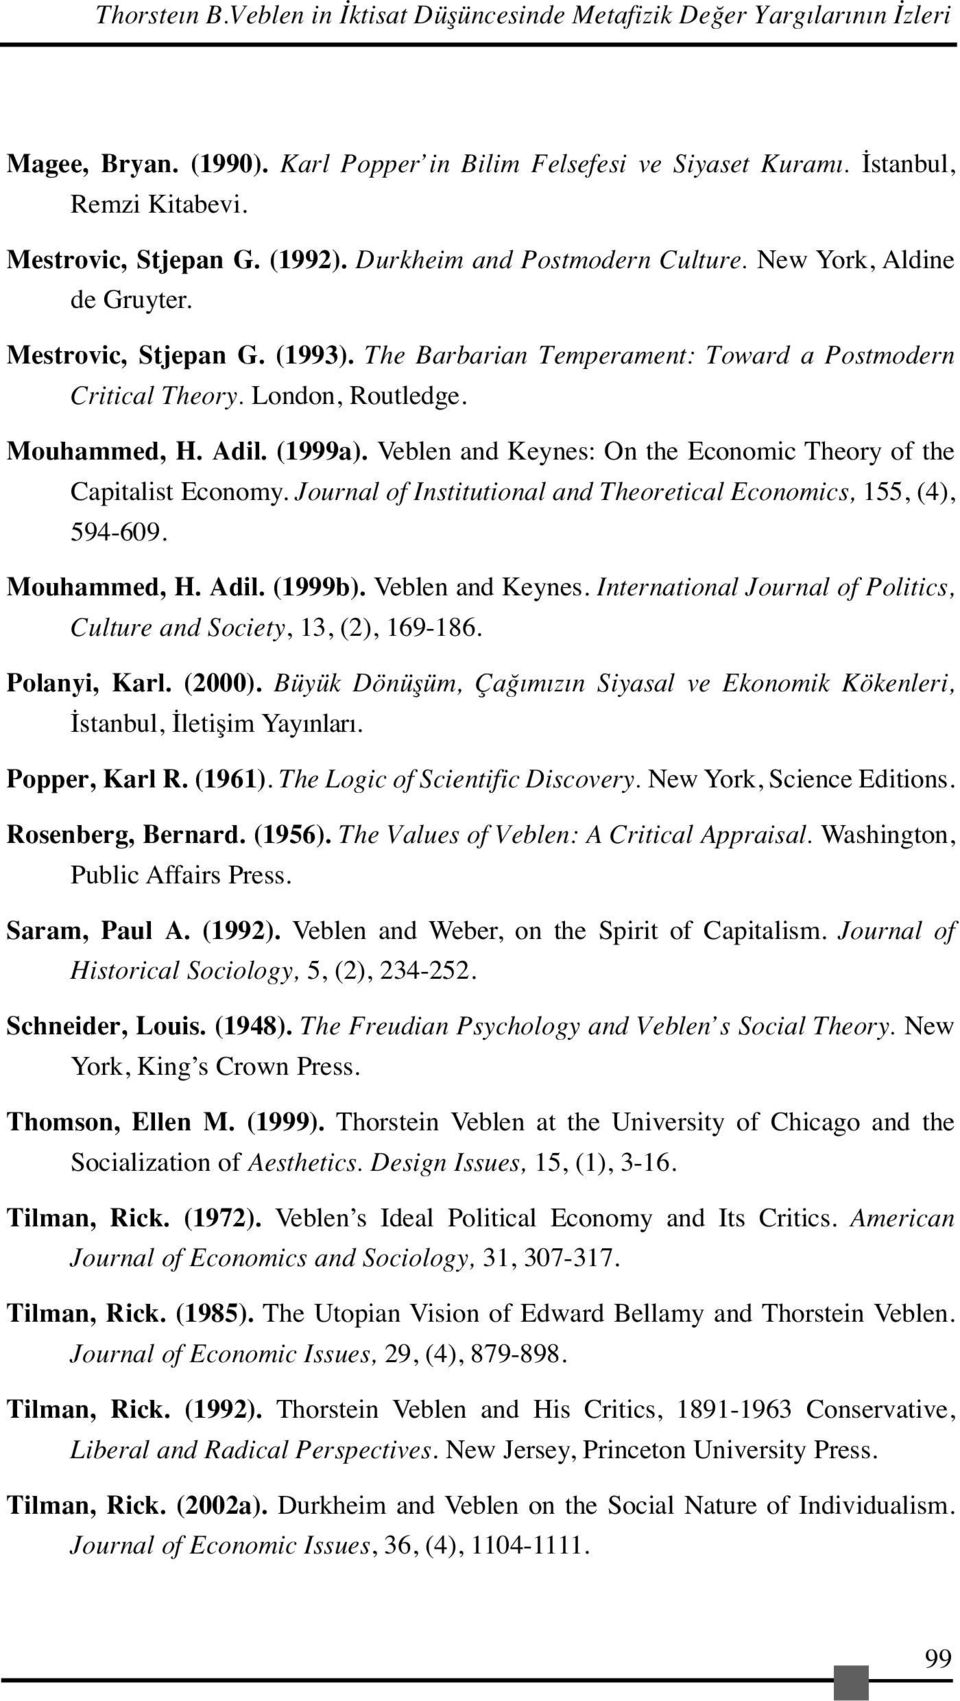 Adil. (1999a). Veblen and Keynes: On the Economic Theory of the Capitalist Economy. Journal of Institutional and Theoretical Economics, 155, (4), 594-609. Mouhammed, H. Adil. (1999b).